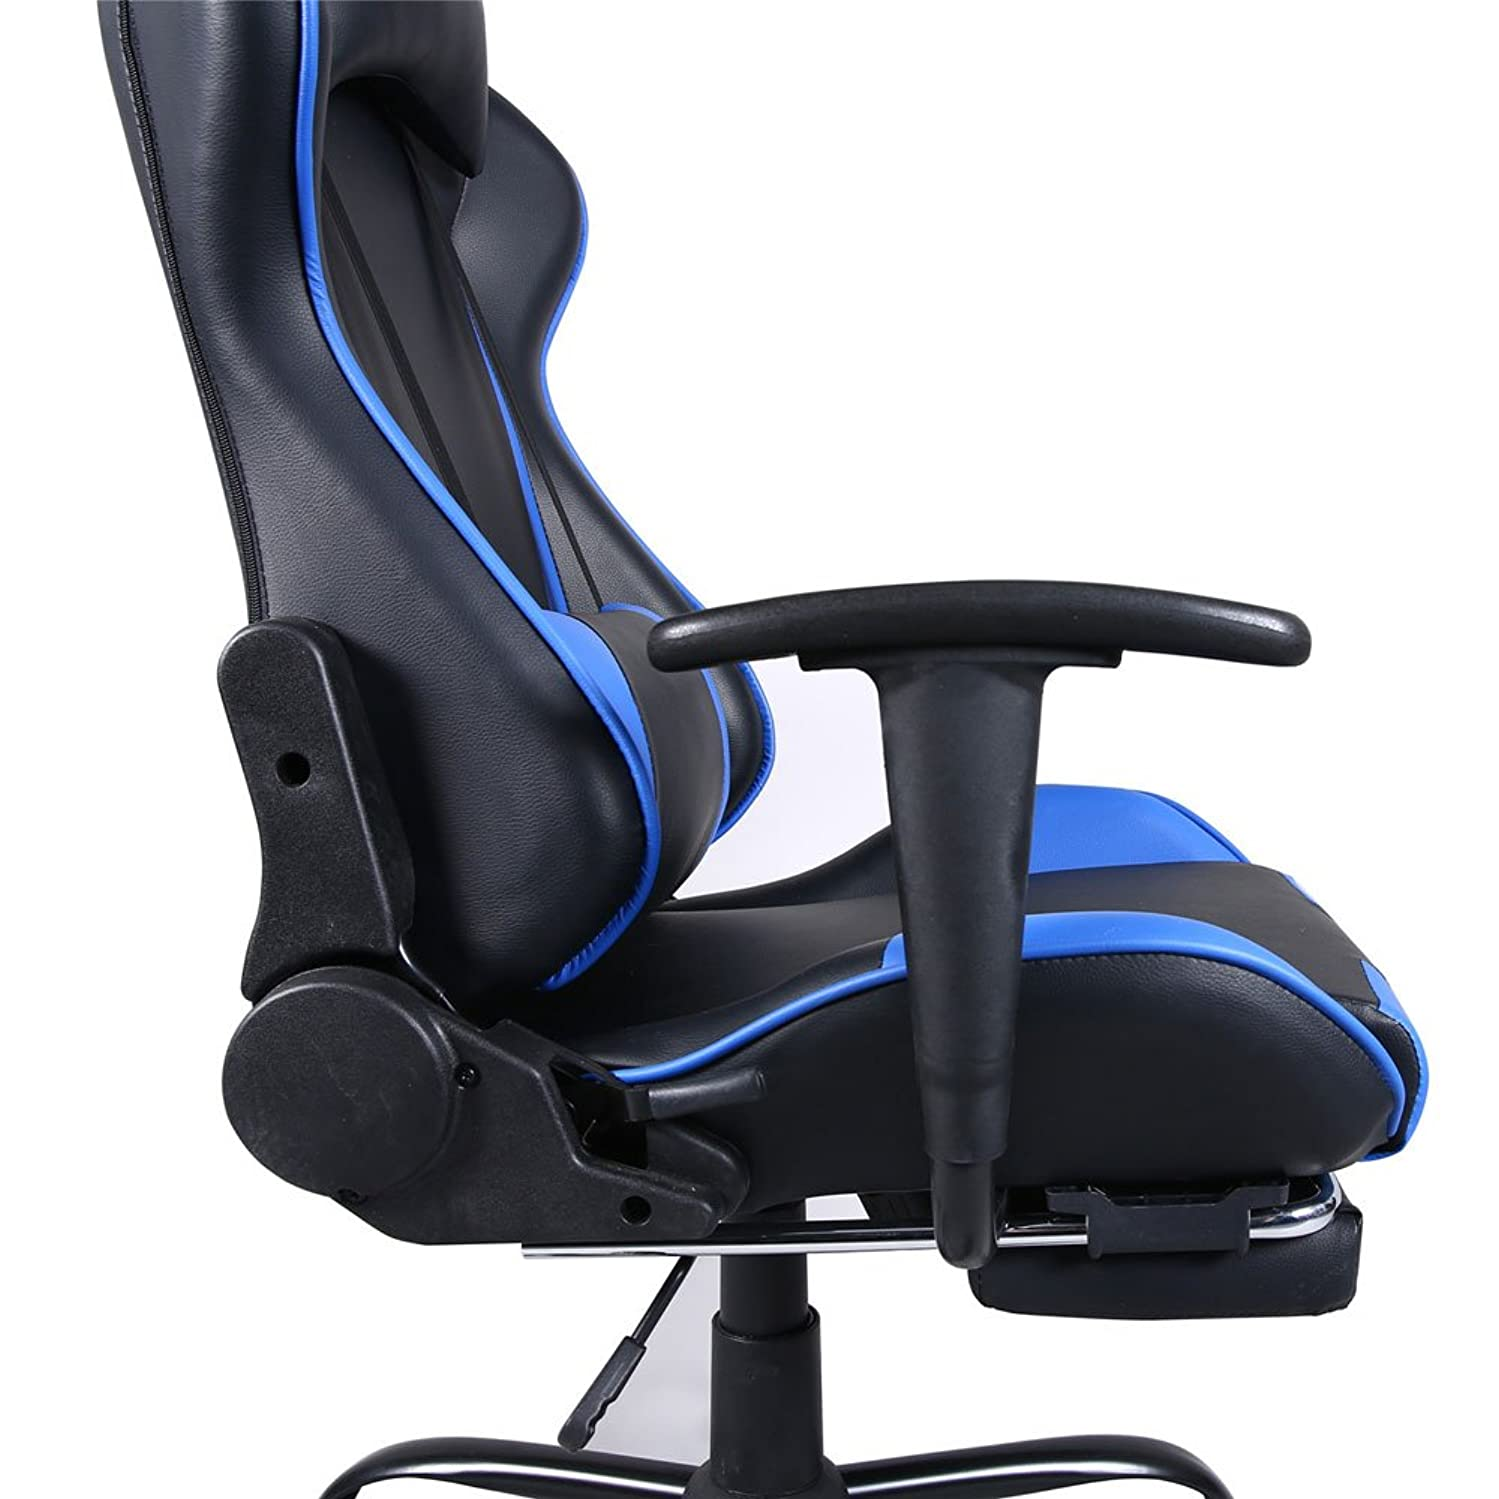 Tofosun High Back Swivel Chair Racing Gaming Chair Office Chair with Footrest Tier Black & Blue